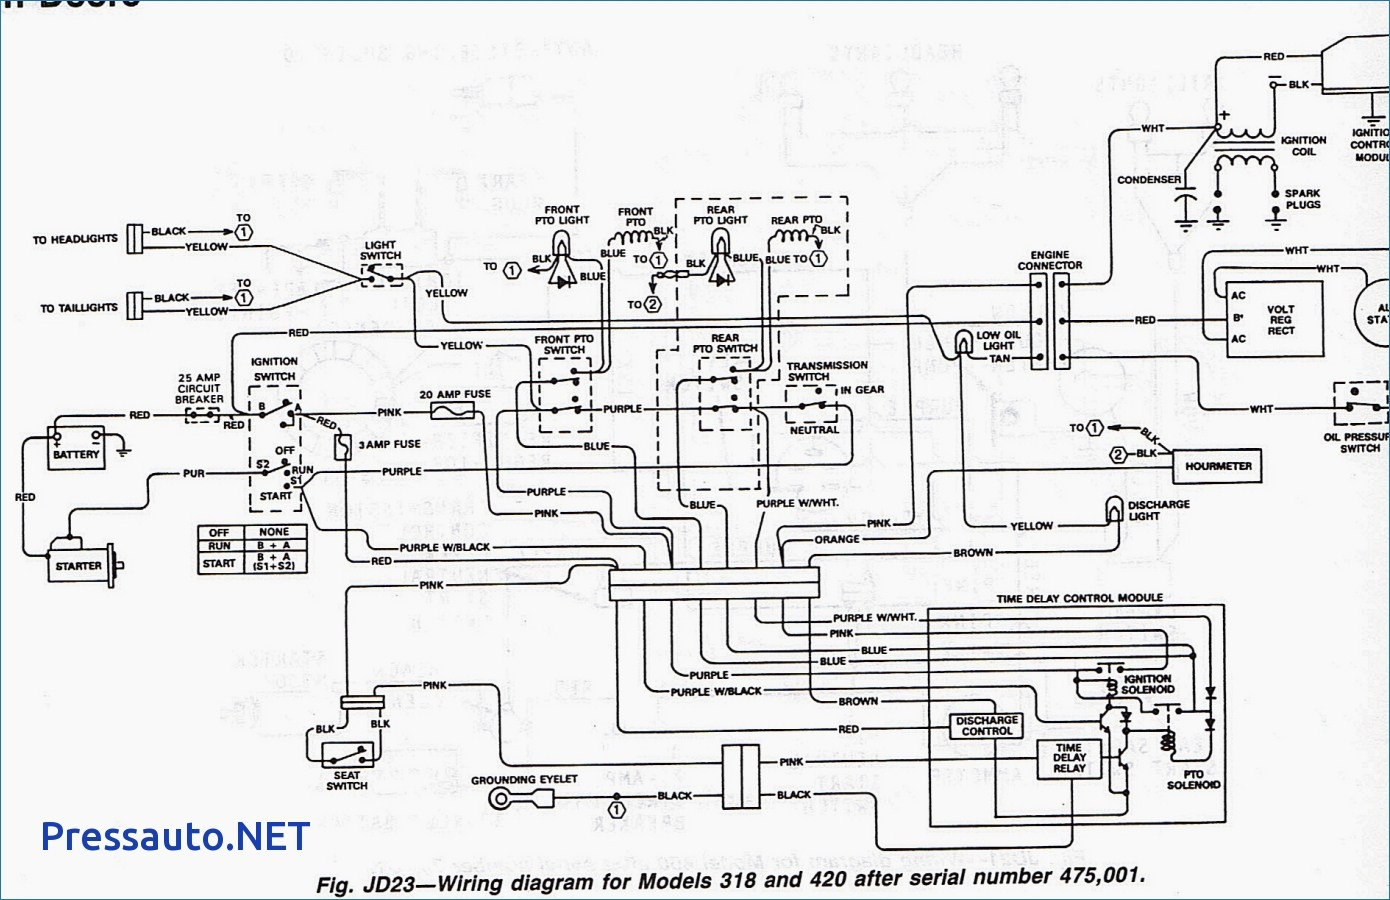 Jd 2010 Wiring Diagram | Wiring Diagram John Deere Wiring Schematic on john deere hydraulic schematics, john deere 2010 gauges, john deere mechanic tools, john deere 345 schematic, john deere 790 schematic, john deere mower f525 schematic, john deere 2010 manual, john deere 2010 fuel injectors, john deere 2010 parts diagram, john deere 2010 troubleshooting, john deere 2010 specifications, john deere 2010 pto schematic, john deere tractor wiring, john deere 318 schematic, john deere electrical schematics, john deere 2010 parts list, john deere 2010 transmission schematic, john deere 318 pto wiring, john deere 2010 steering, john deere 2010 electrical wiring,